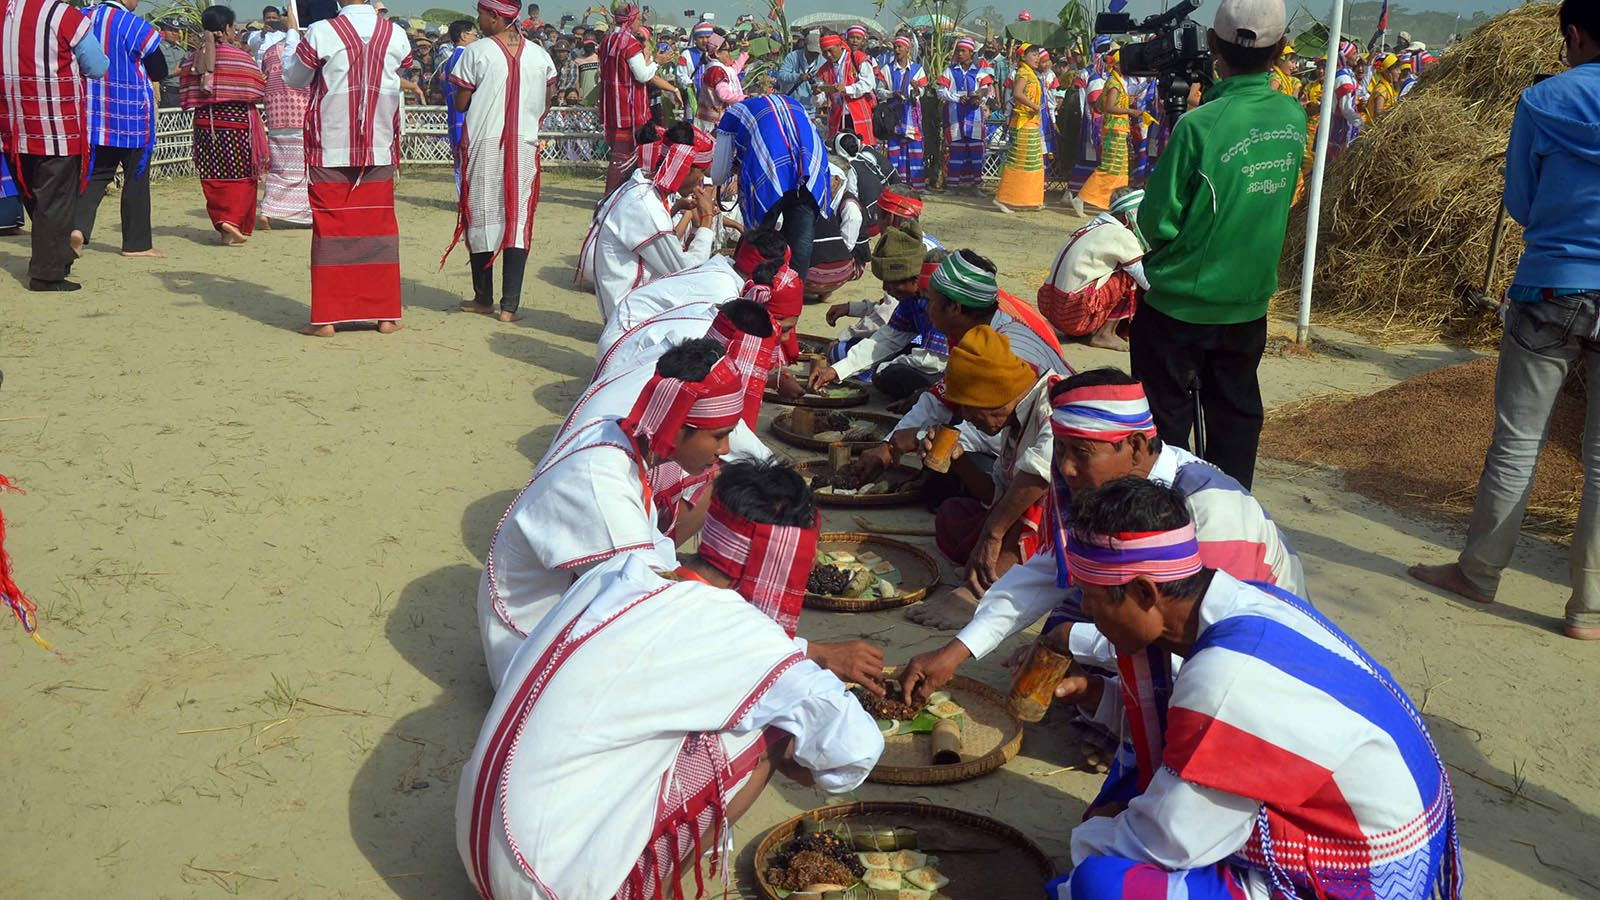 Kayin people enjoy traditional feast to celebrate the Kayin New Year Day.